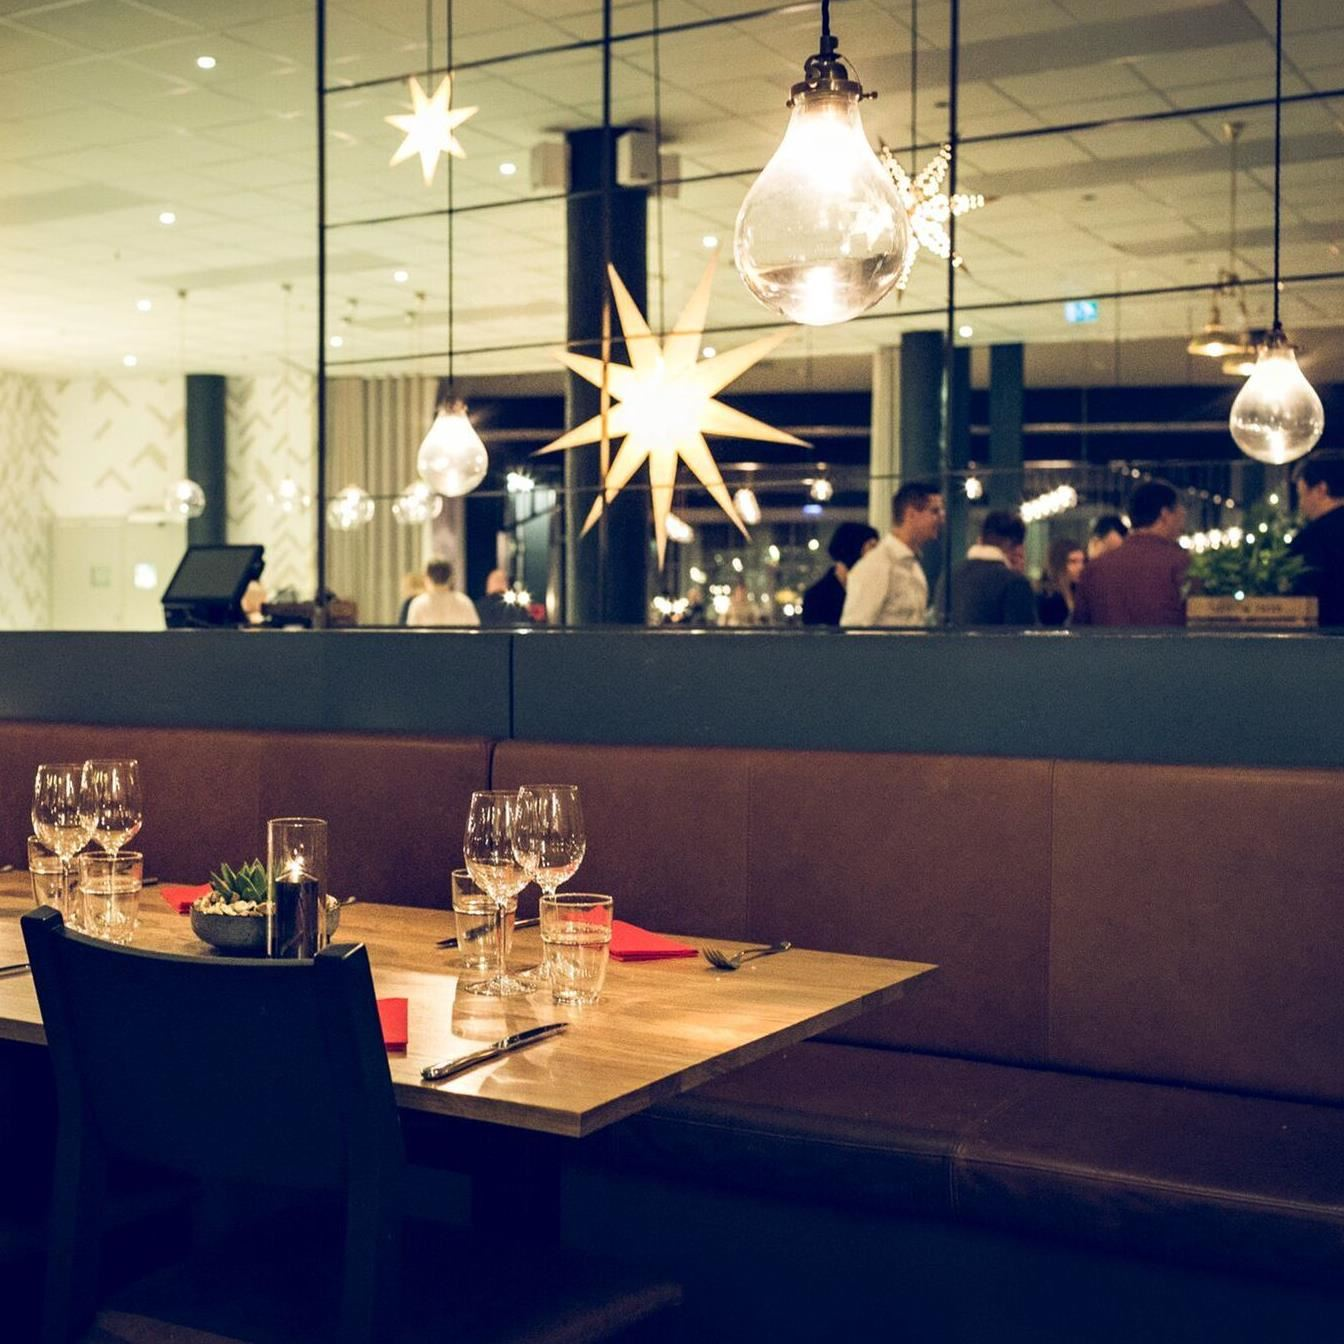 Adventsbrunch på Restaurang Grow